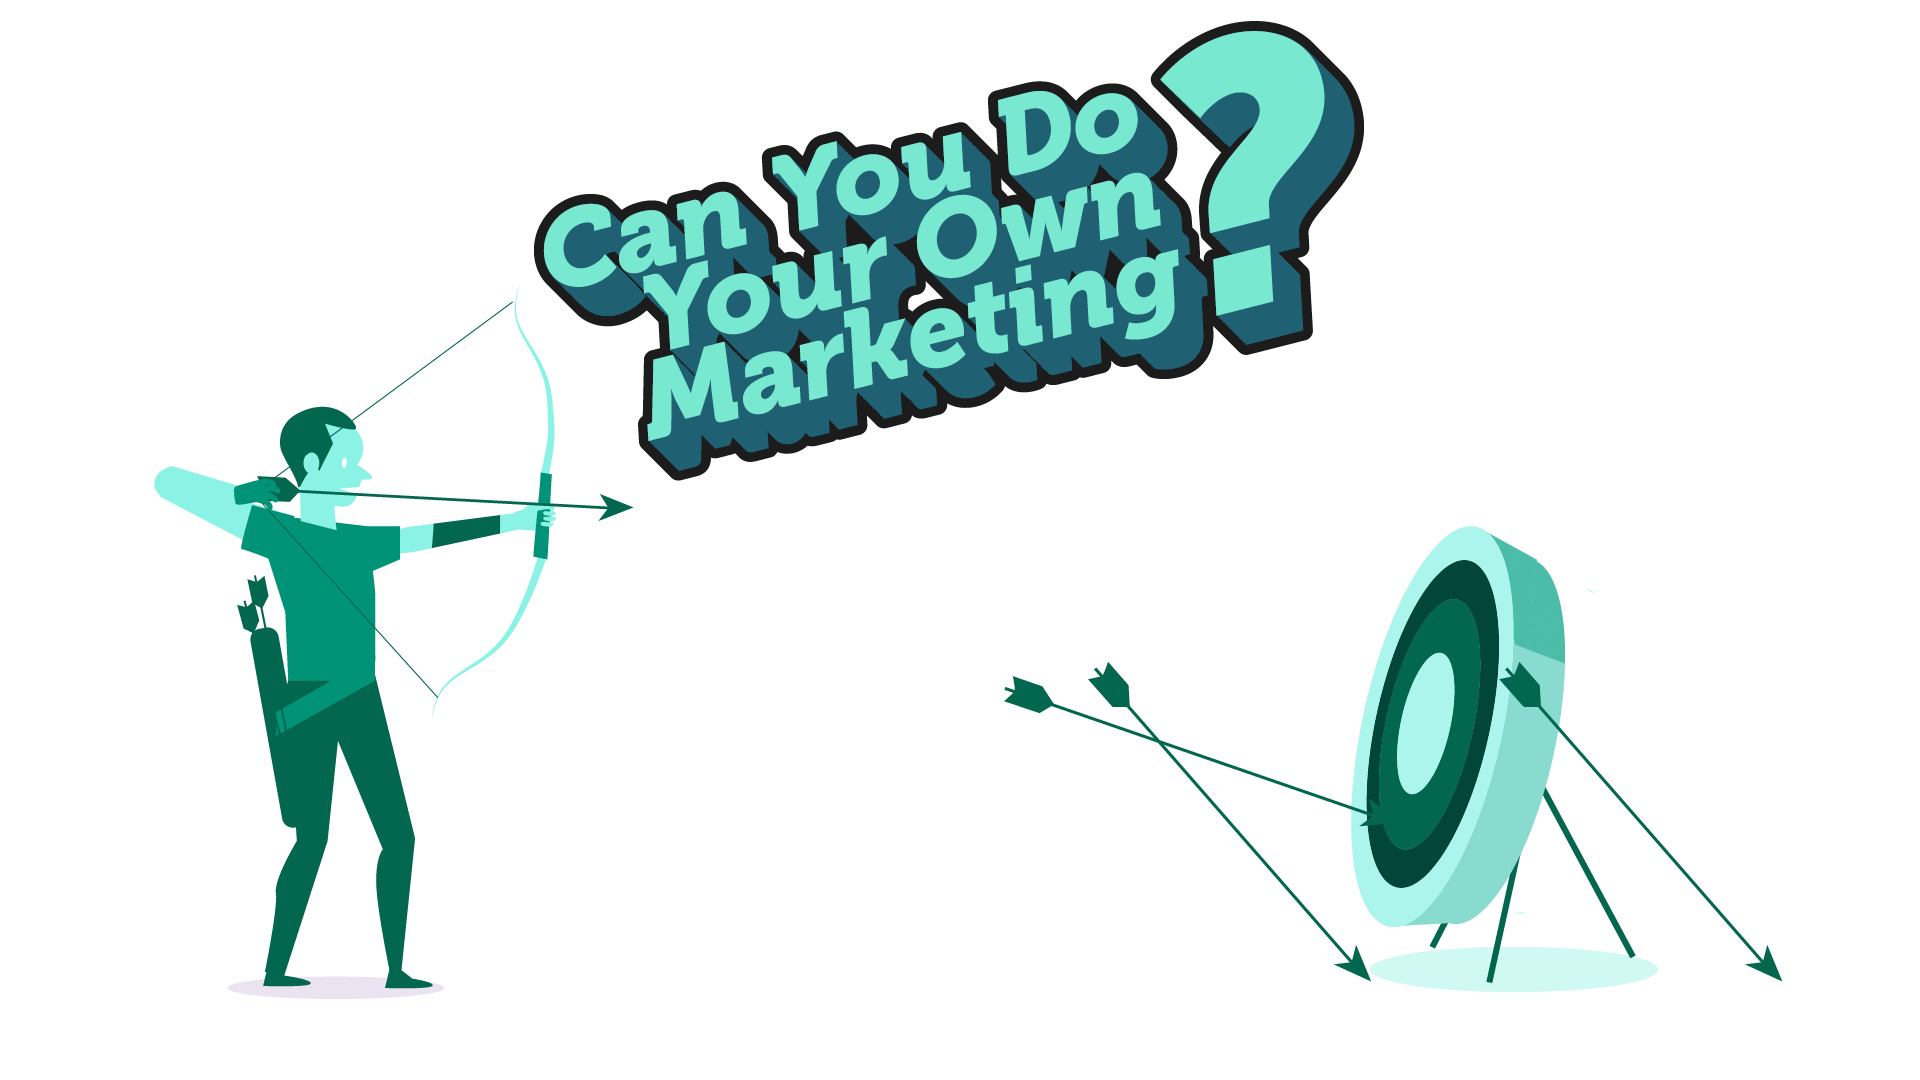 Can you do your own marketing